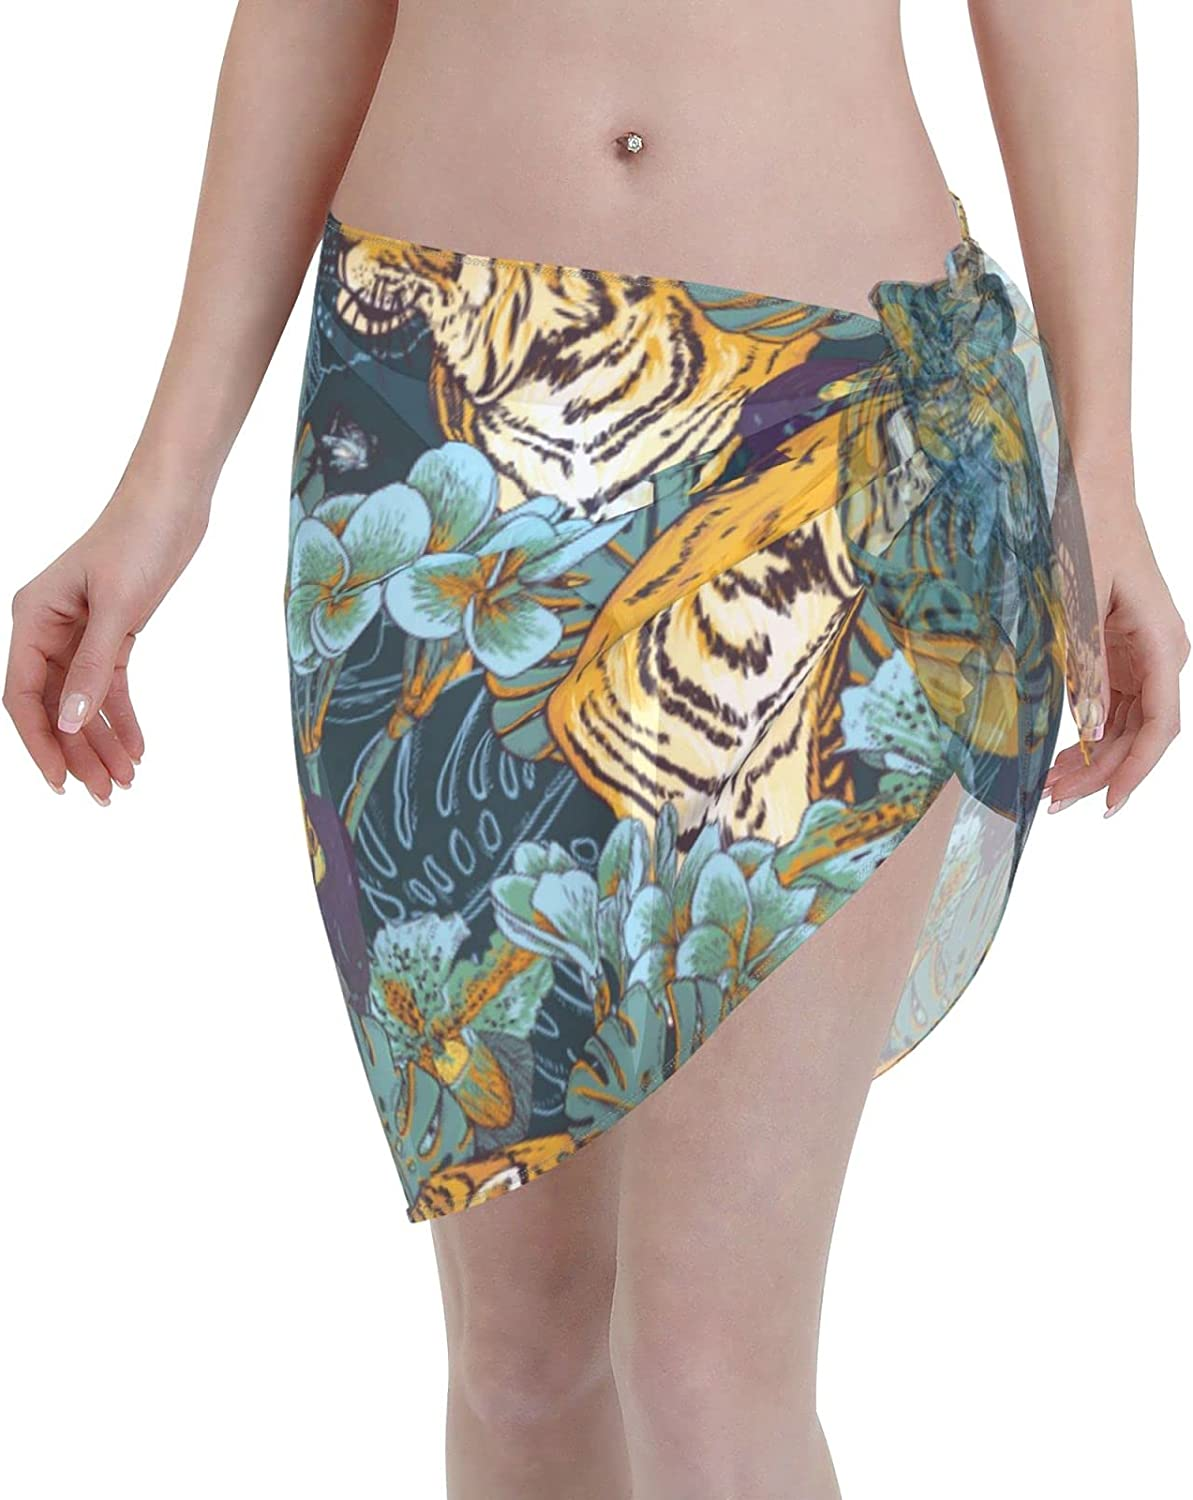 marat Women's Wrap Skirt Tropical Floral Seamless Background with Tiger Tie Up Waist Swimsuit Cover Ups Sarong Swimwear Beach Summer Shawl 55.1 X 18.6 Inch Black